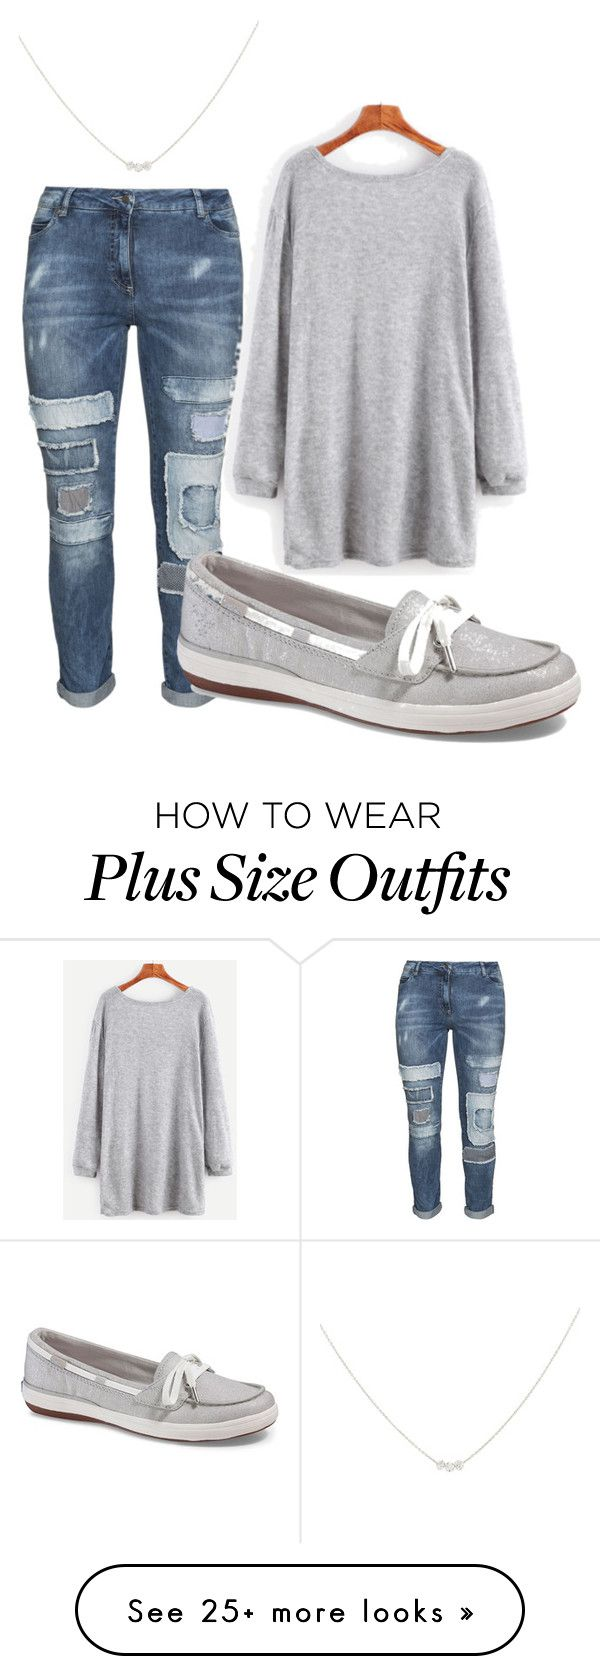 Watch Summer Internship Style: 8 Looks From Polyvore That Make TheGrade video